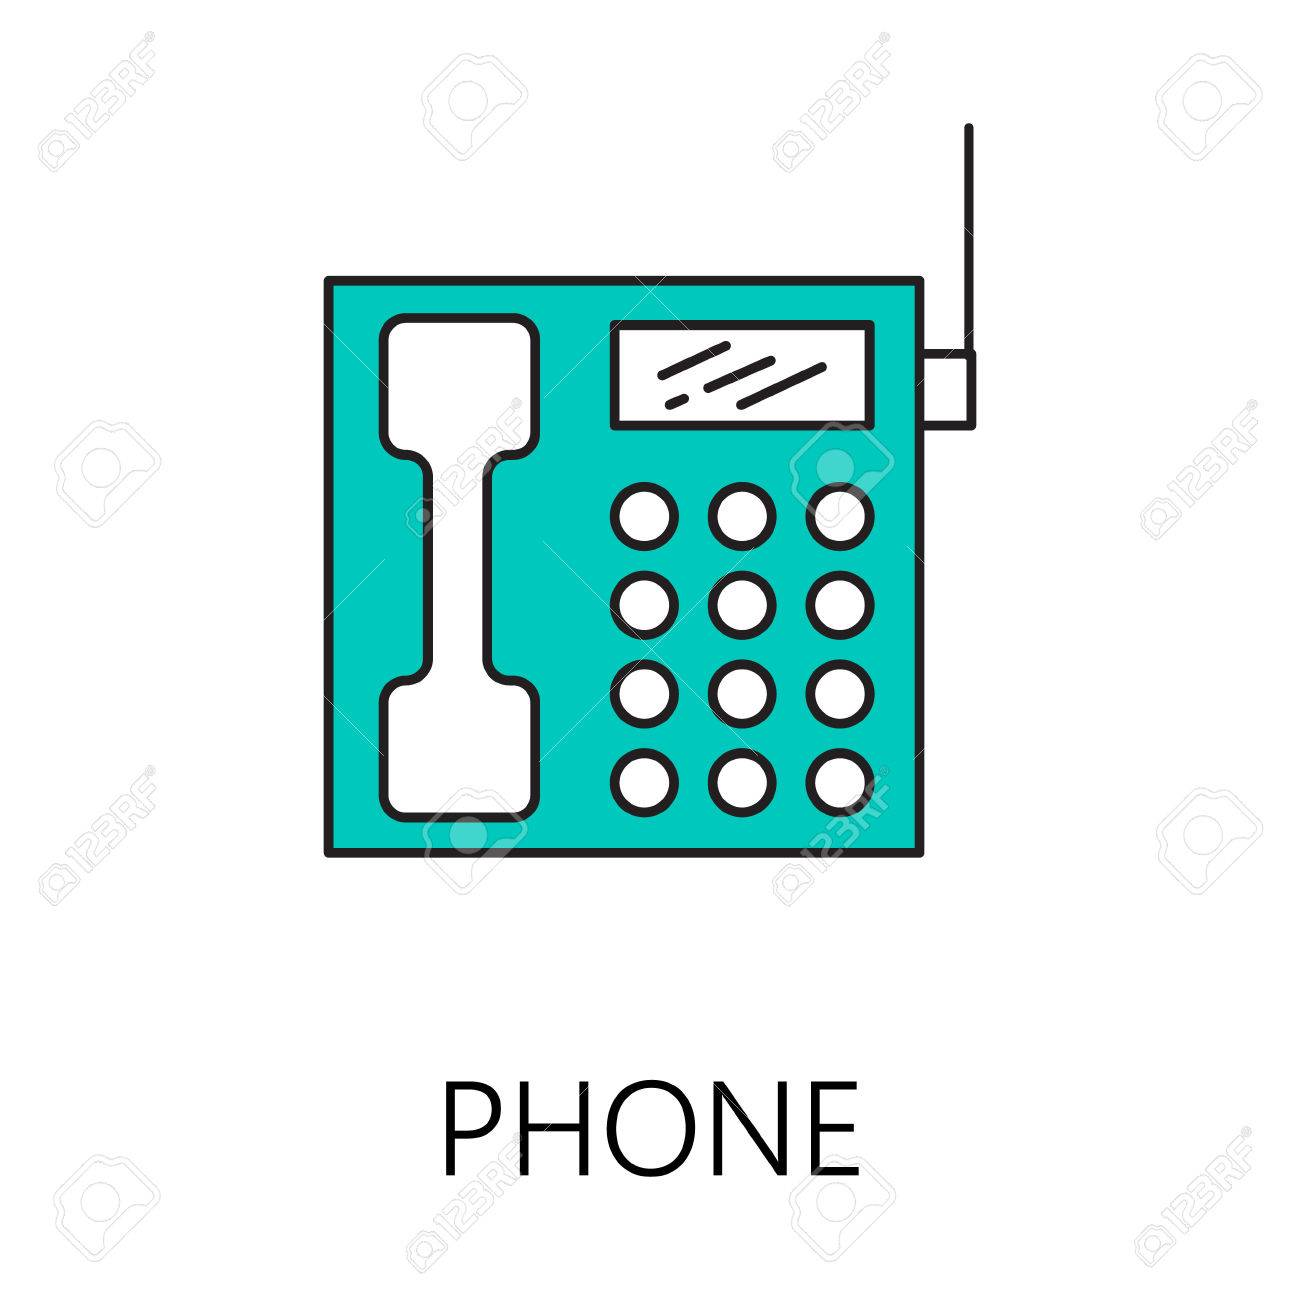 hight resolution of phone line icon vector symbol on the topic of home electronic devices color minimalist